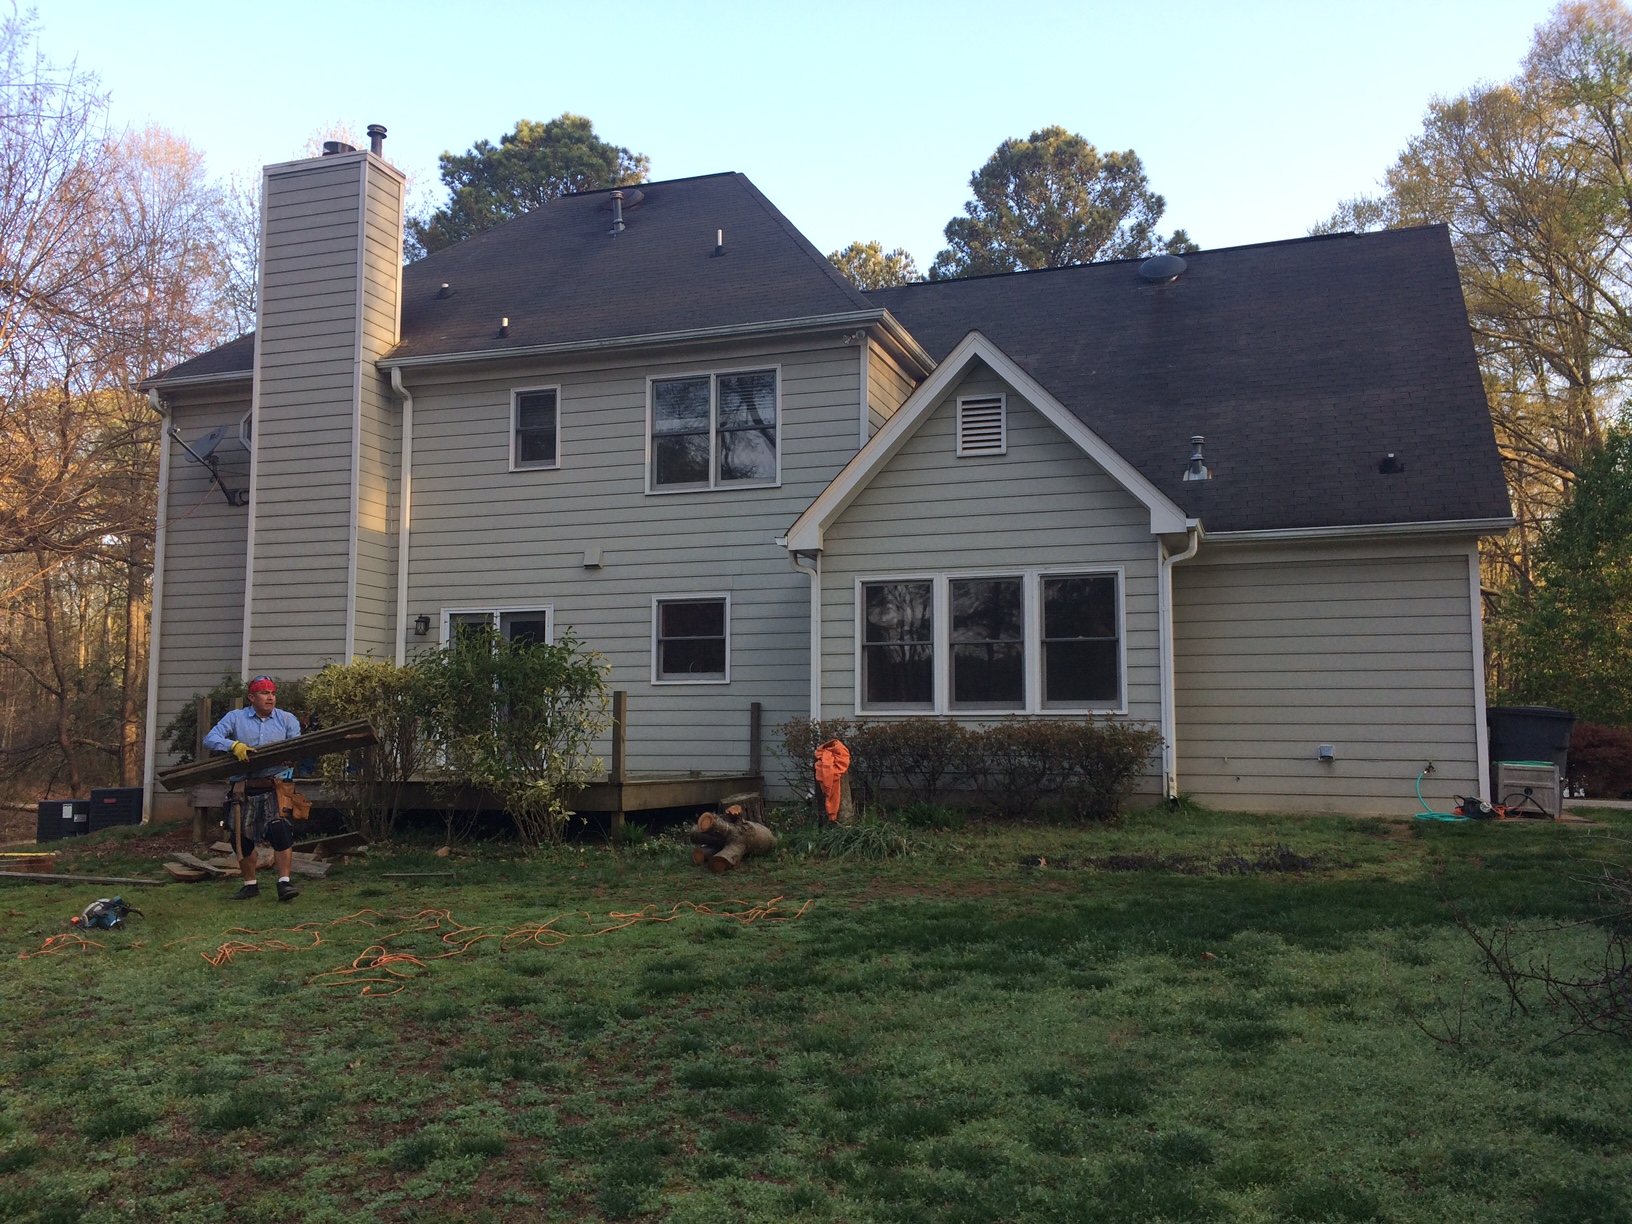 New Project -- before demo. We worked with these clients for a lengthy period of time to balance their budget with their needs. As a team, we perservered, and this week we are starting an addition. 8 foot bump out to the kitchen, a master bath redo, covered porch, & open deck.